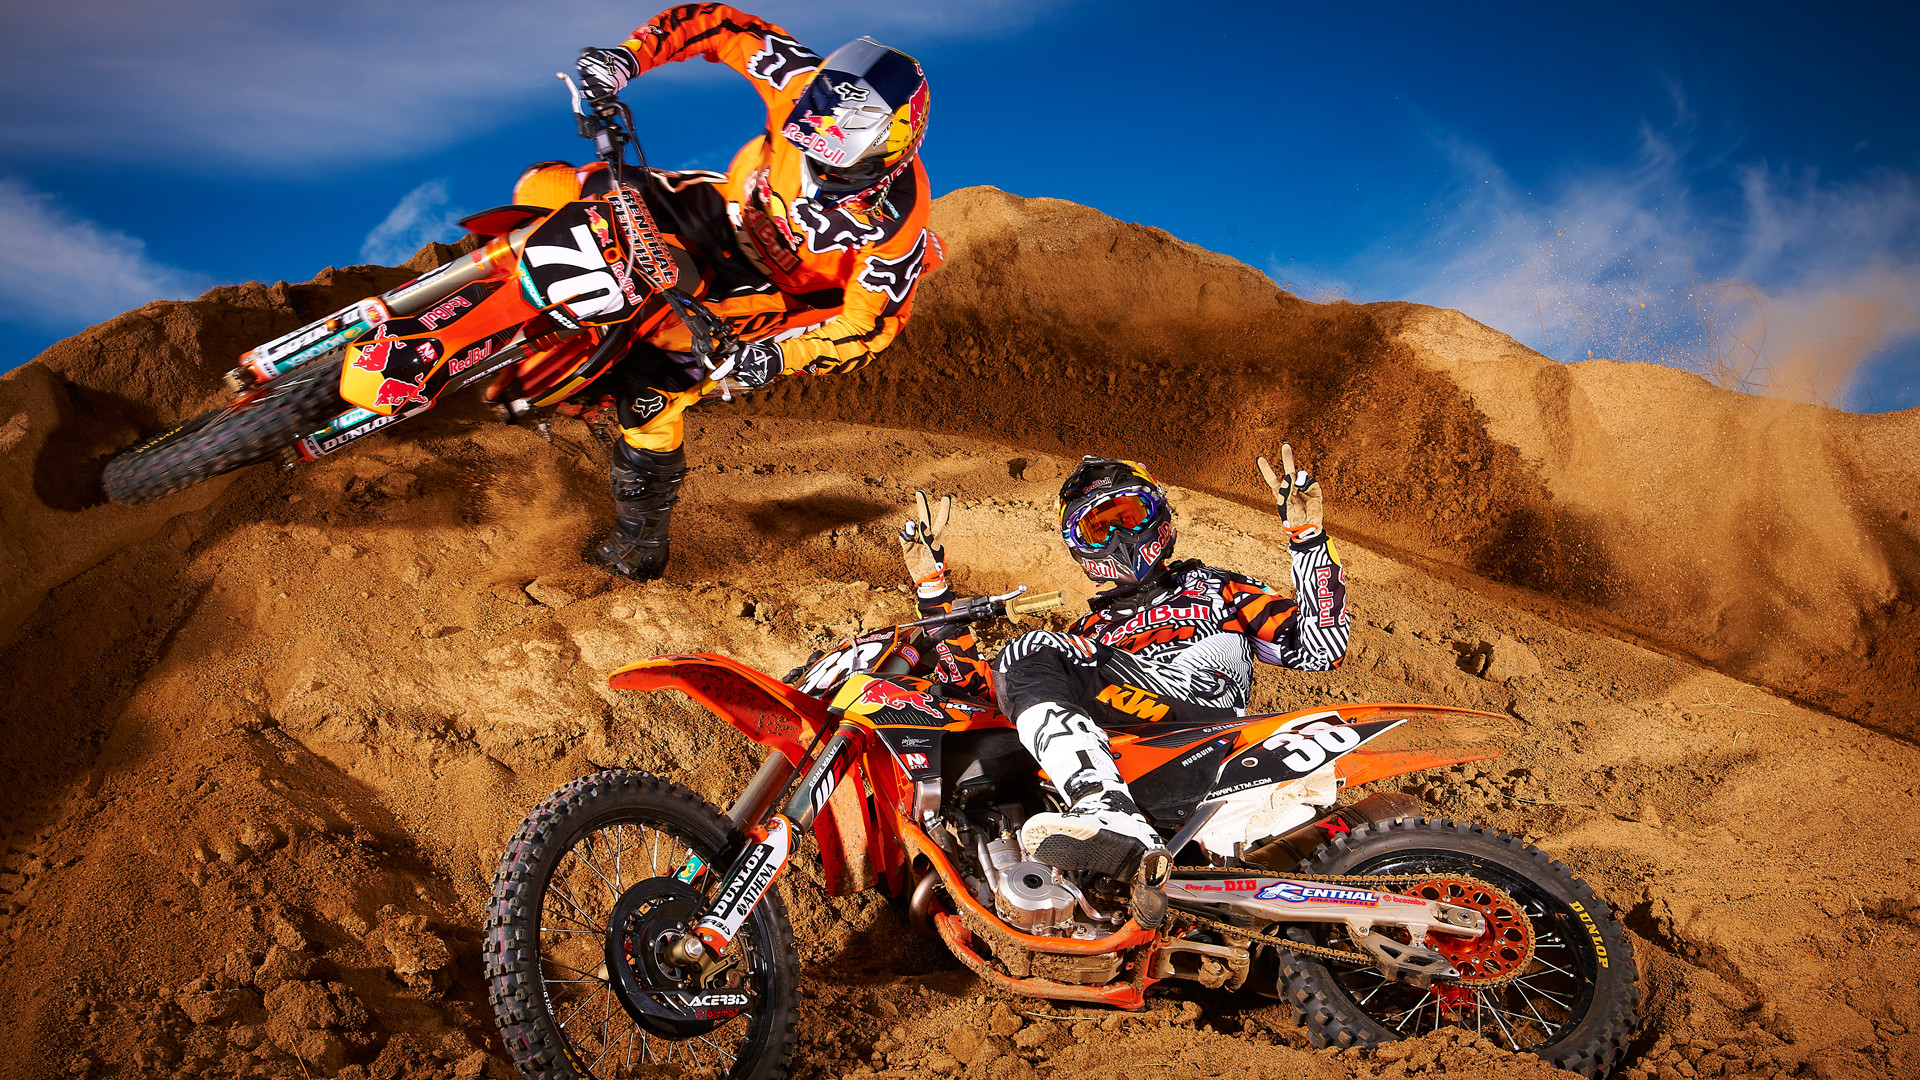 10 New Ktm Dirt Bike Wallpapers Full Hd 1080p For Pc: Dirt Bike Wallpaper ·① WallpaperTag